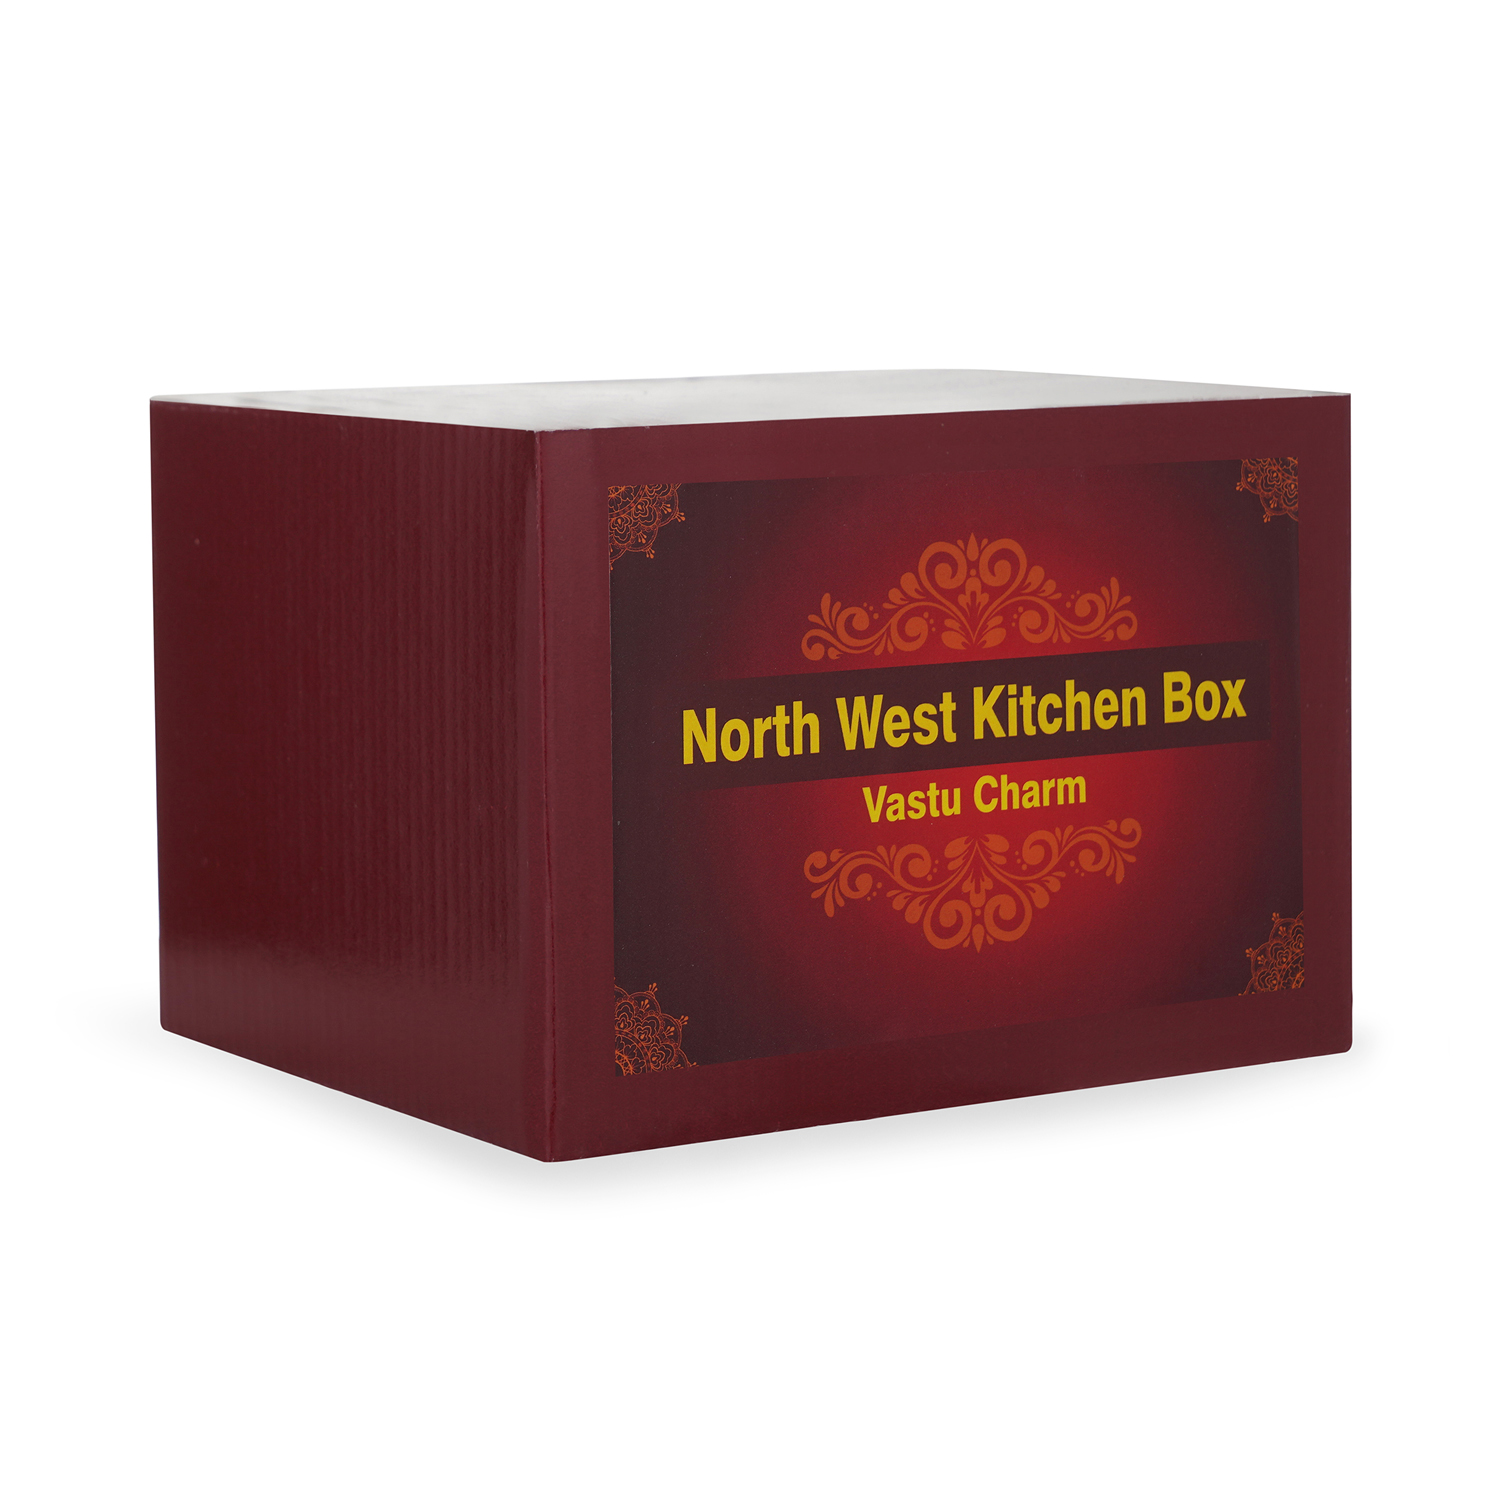 NORTH WEST KITCHEN BOX